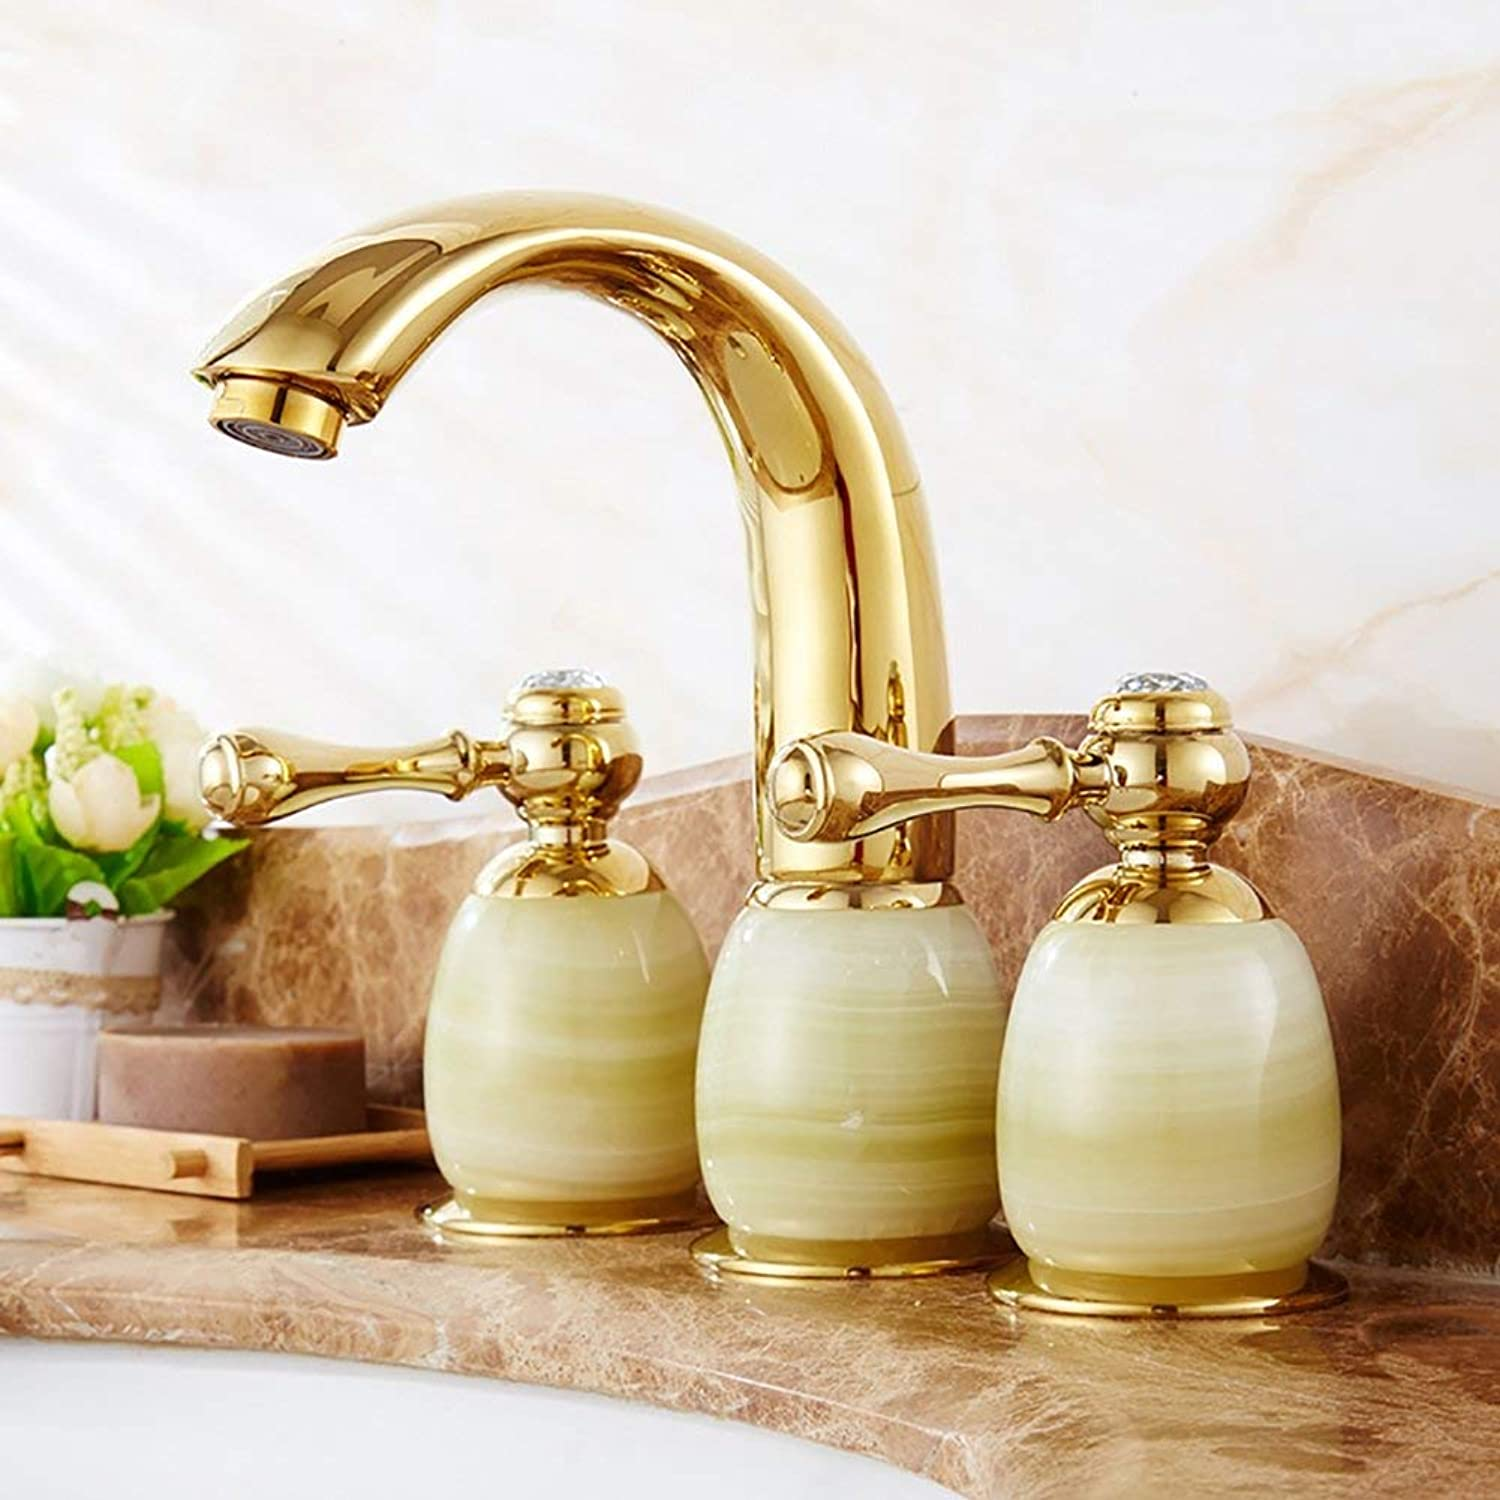 ZLL Home Hotel Bathroom, Sink, Basin Taps, Water-Tap-Basin Mixer Three-Hole Jade Bowldertable Basin Faucet Double Handle Green Stone and golden,Sink Mixer Faucet,B